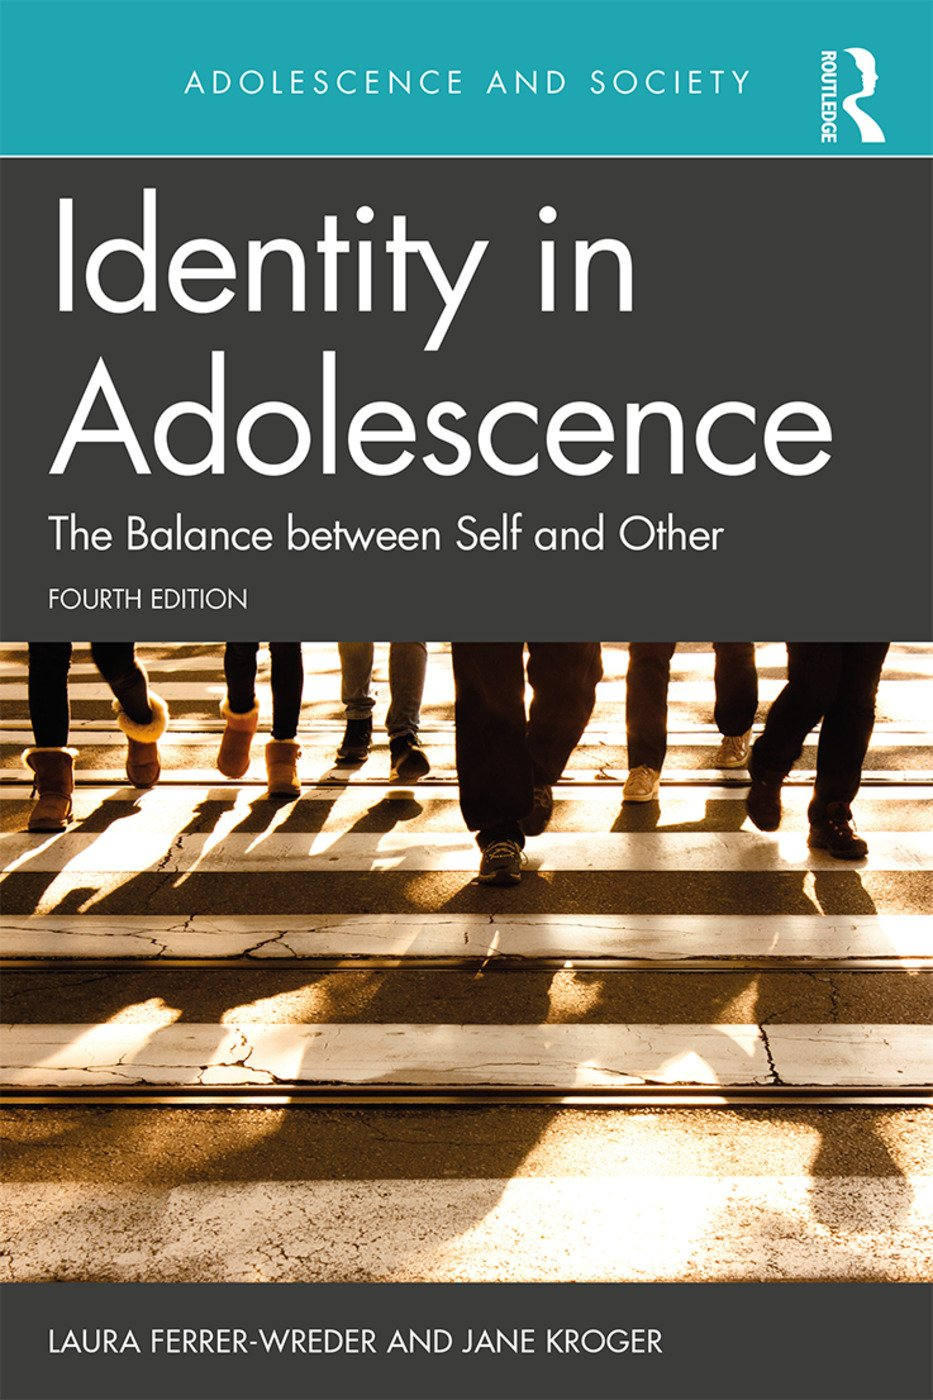 Identity in Adolescence 4e: The Balance between Self and Other book cover